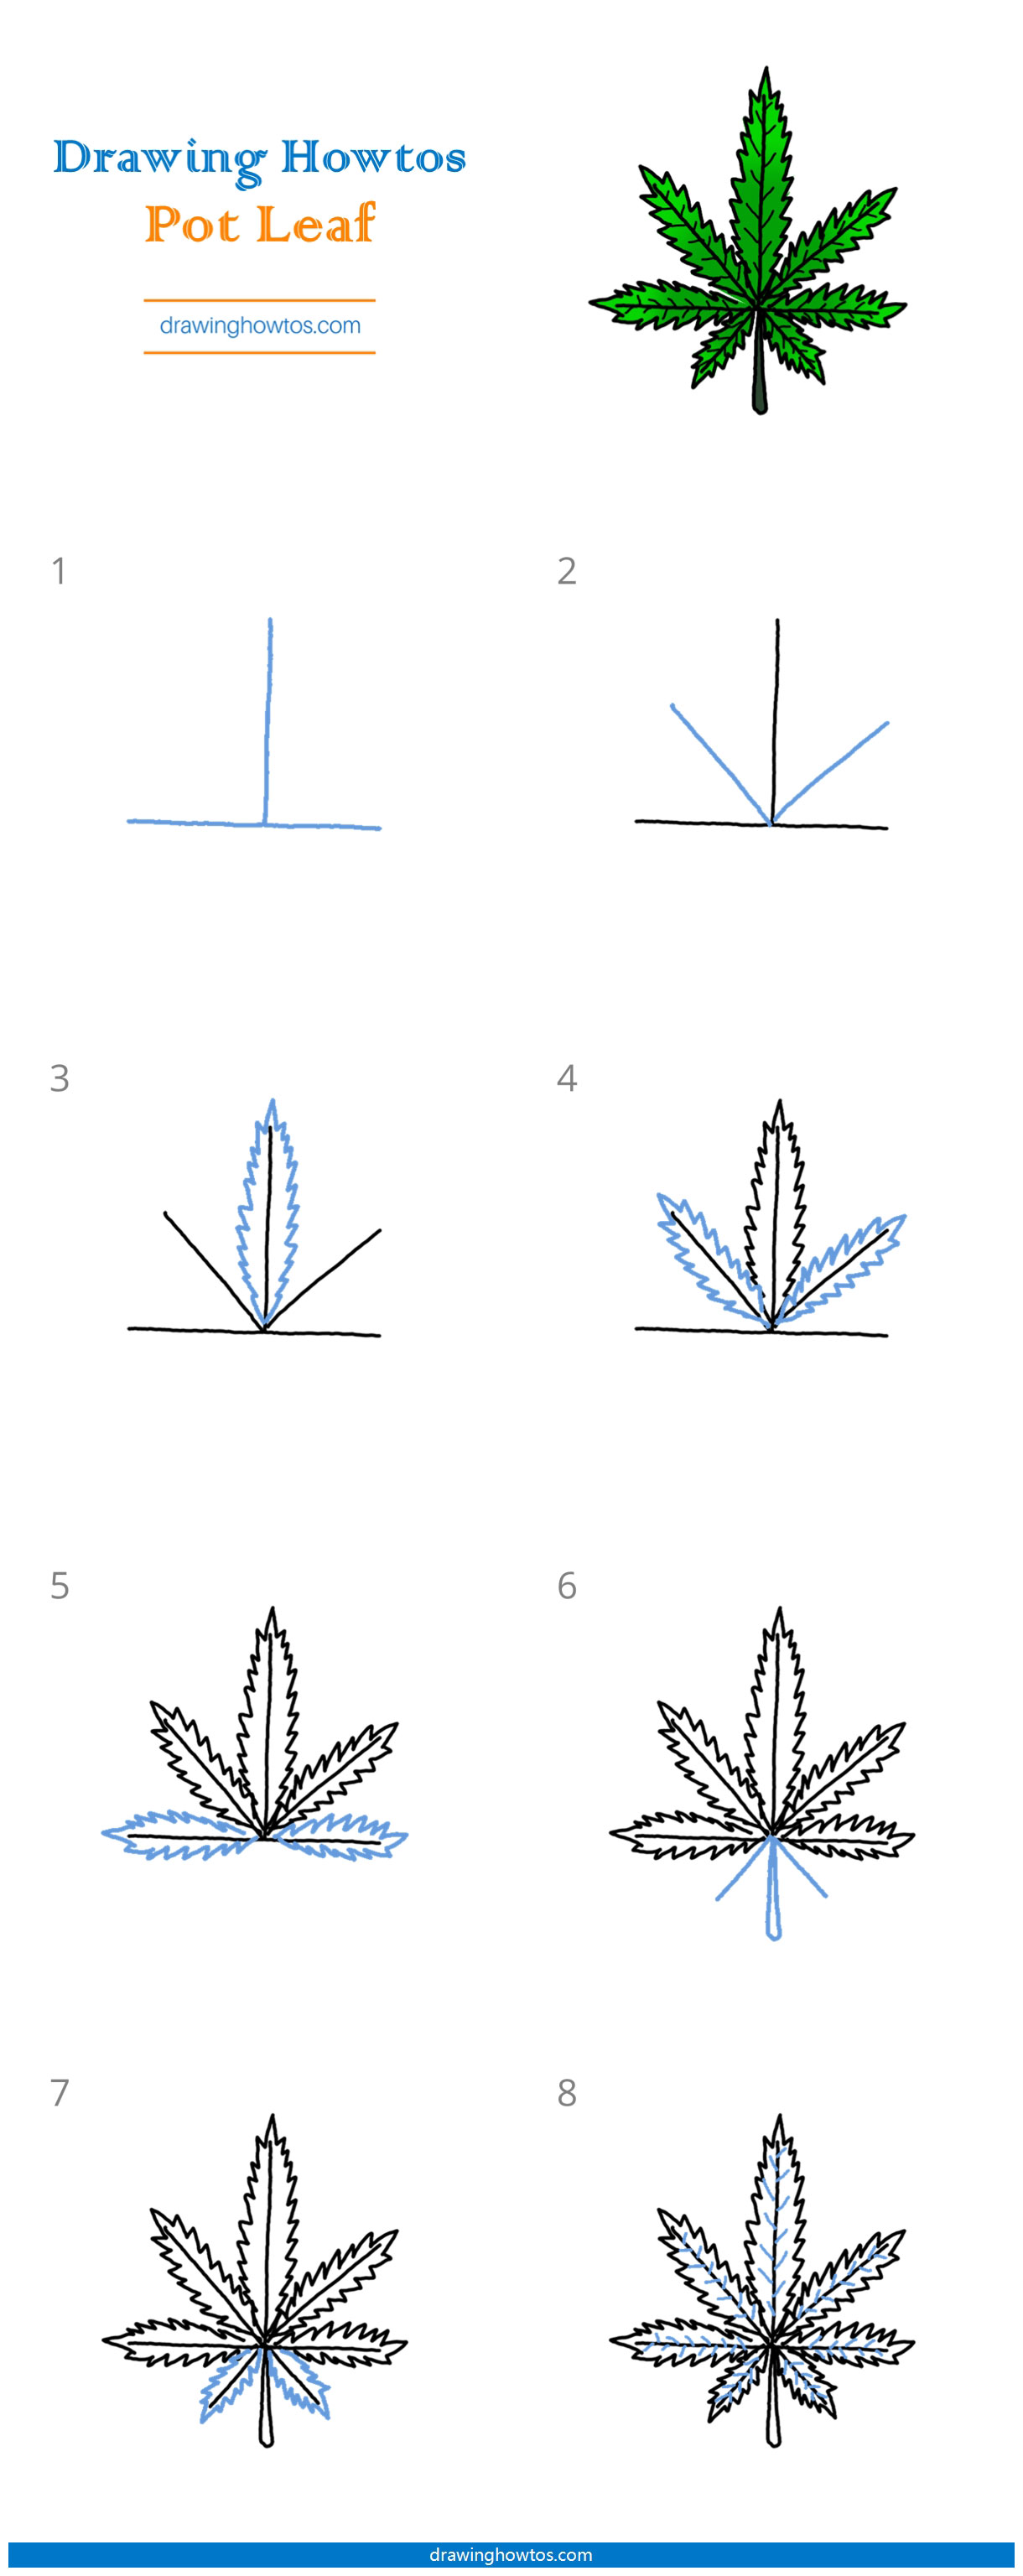 Step By Step Pot Leaf Drawing : drawing, Drawing, Guides, Howtos